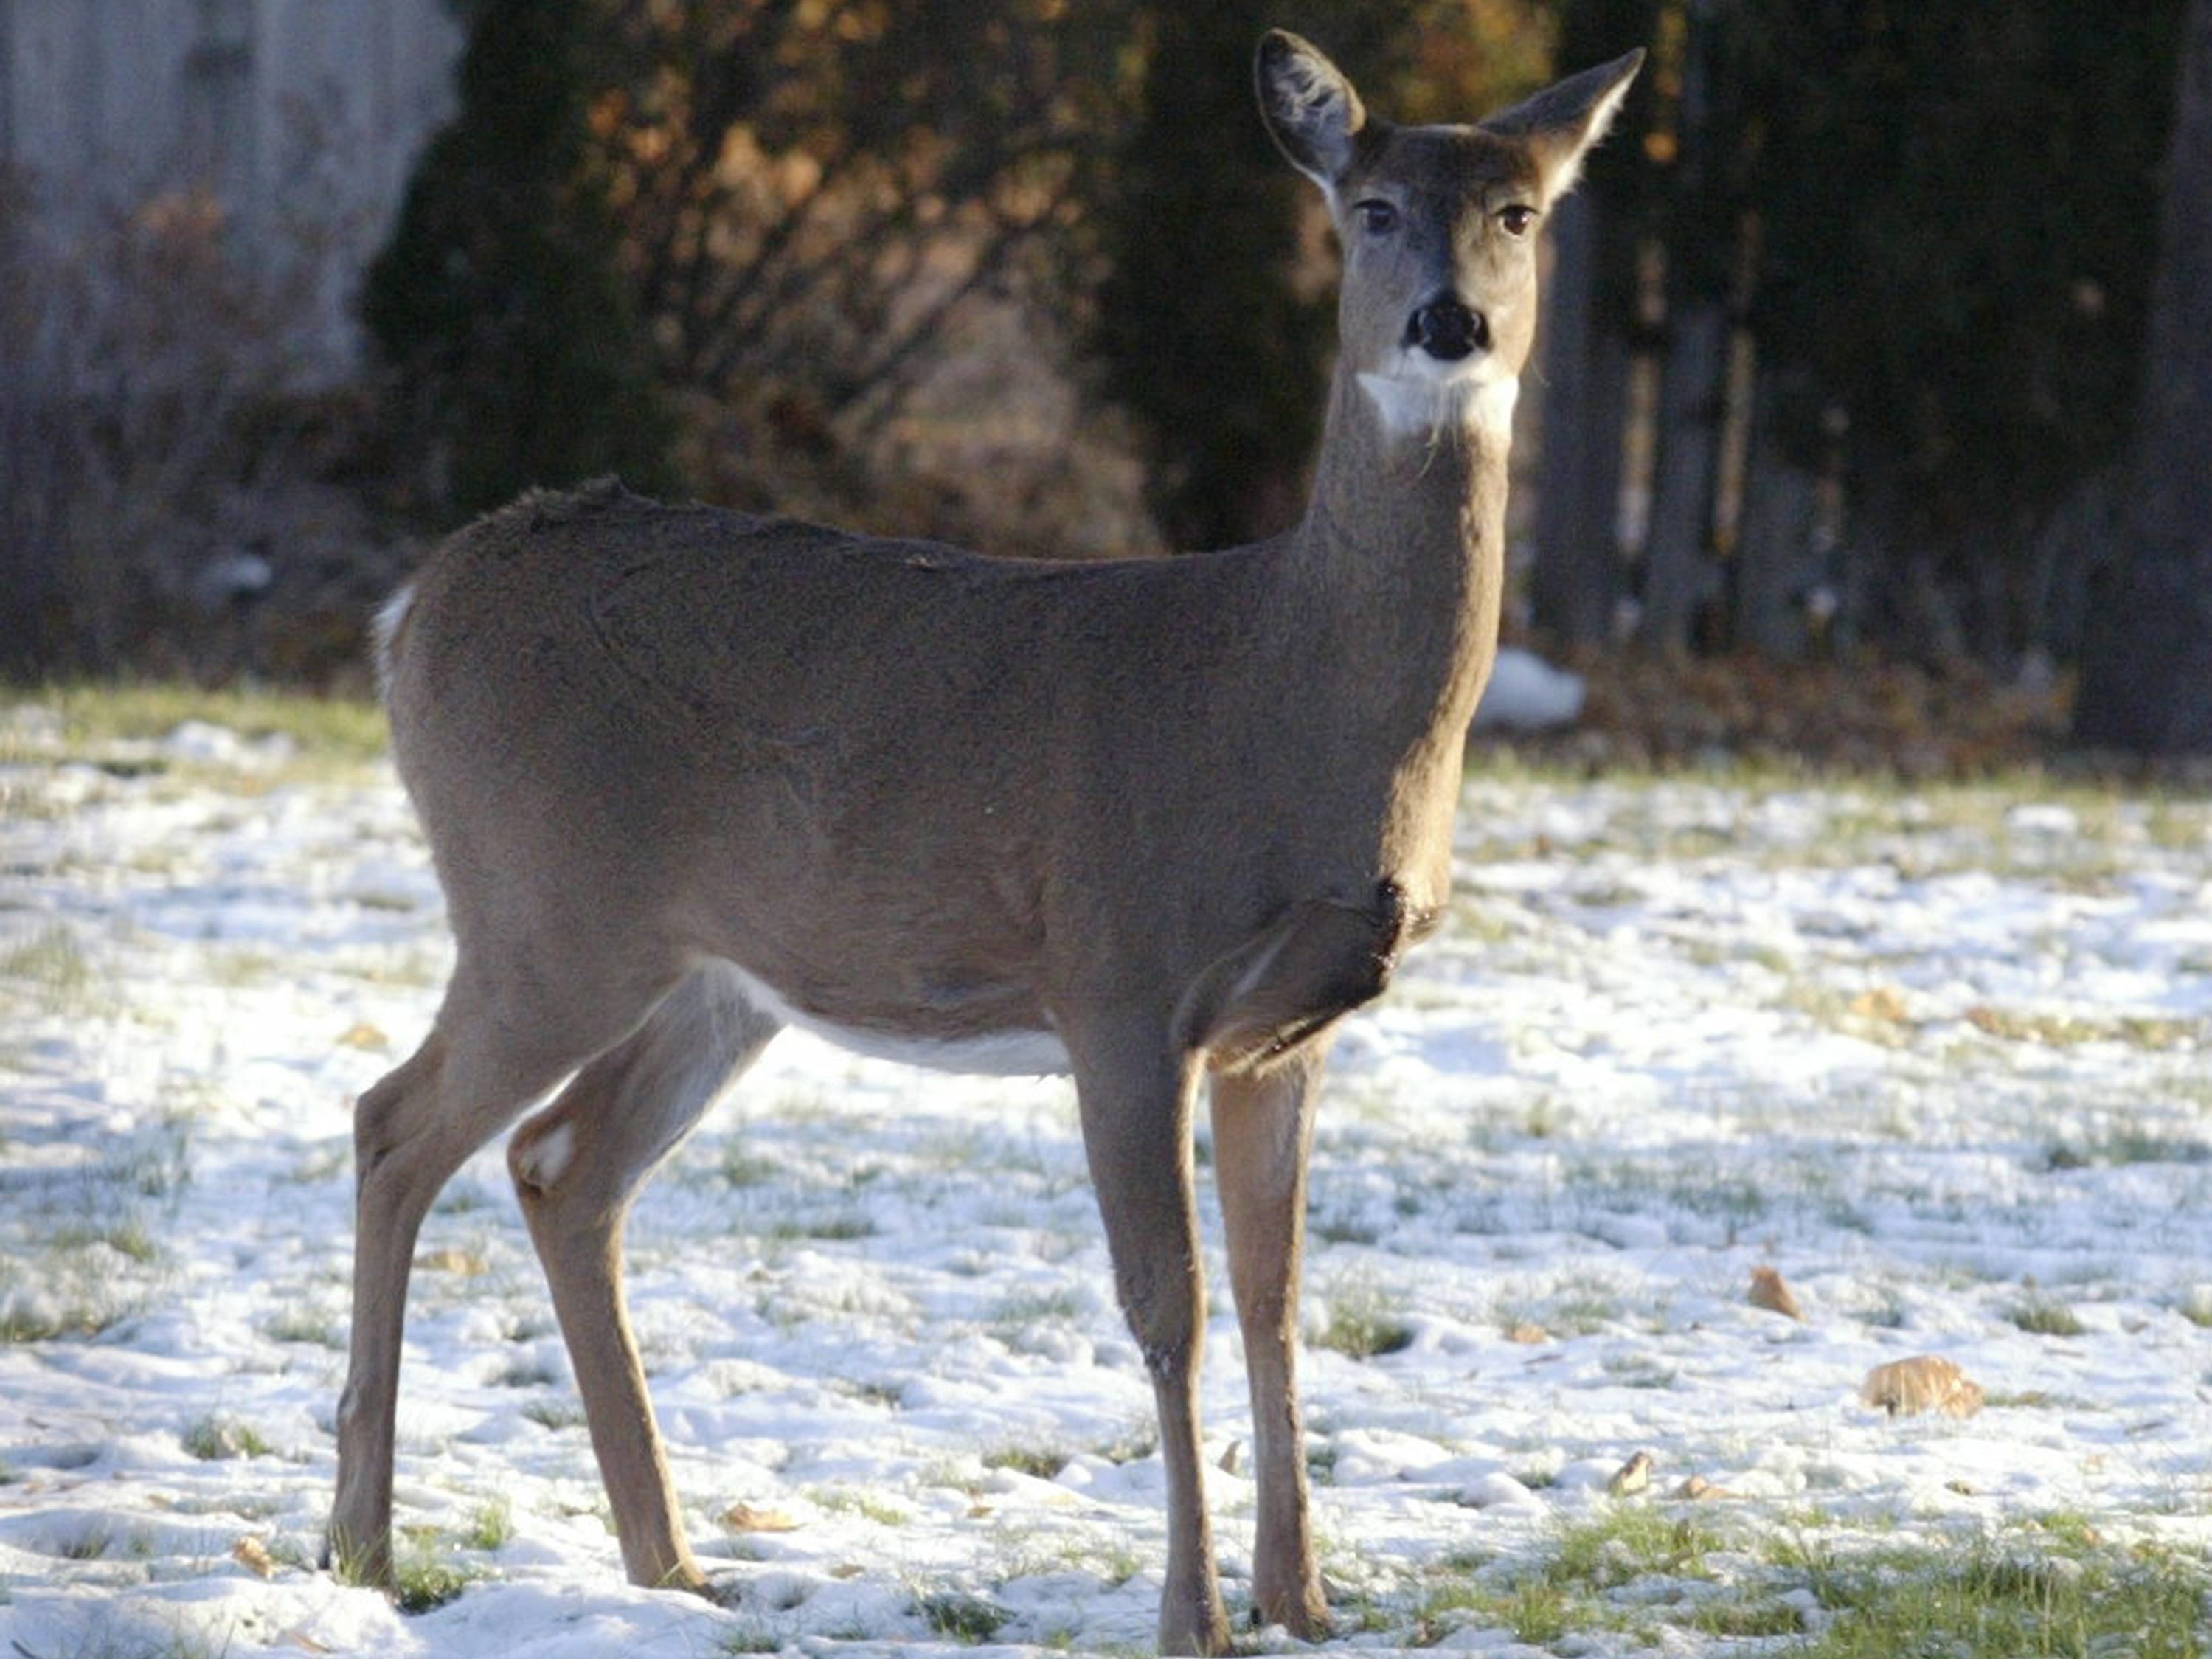 A doe looks about in the back yard of a City of Sheboygan home in the 1000 block of N. 23rd Street, Wednesday November 14, 2018, in Sheboygan, Wis.